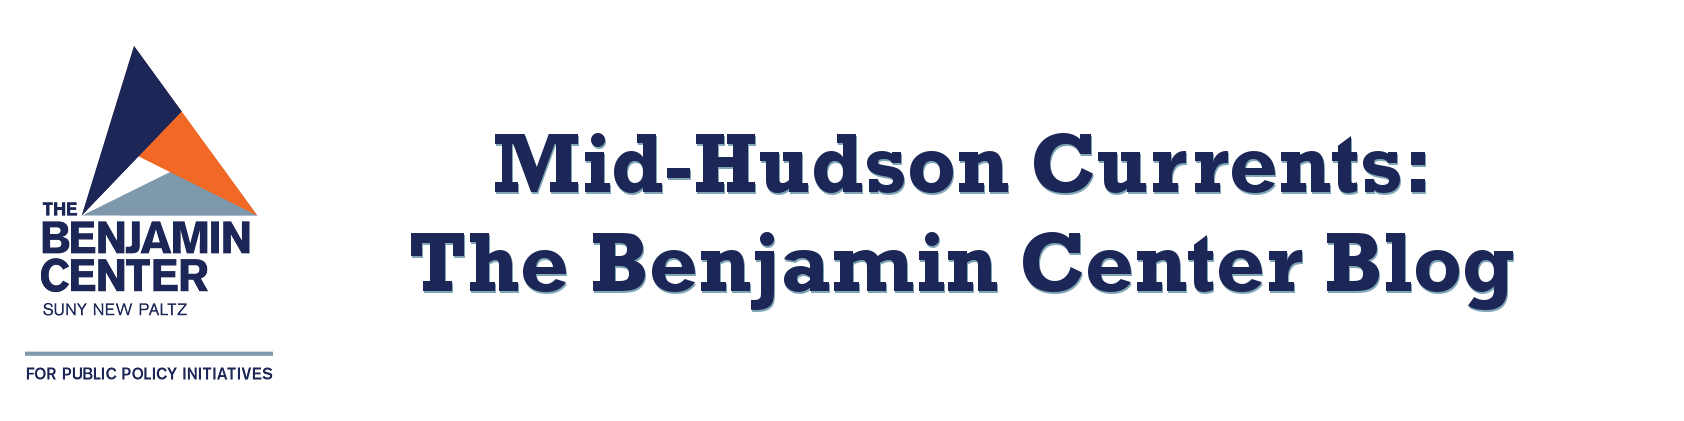 Mid-Hudson Currents: The Benjamin Center Blog